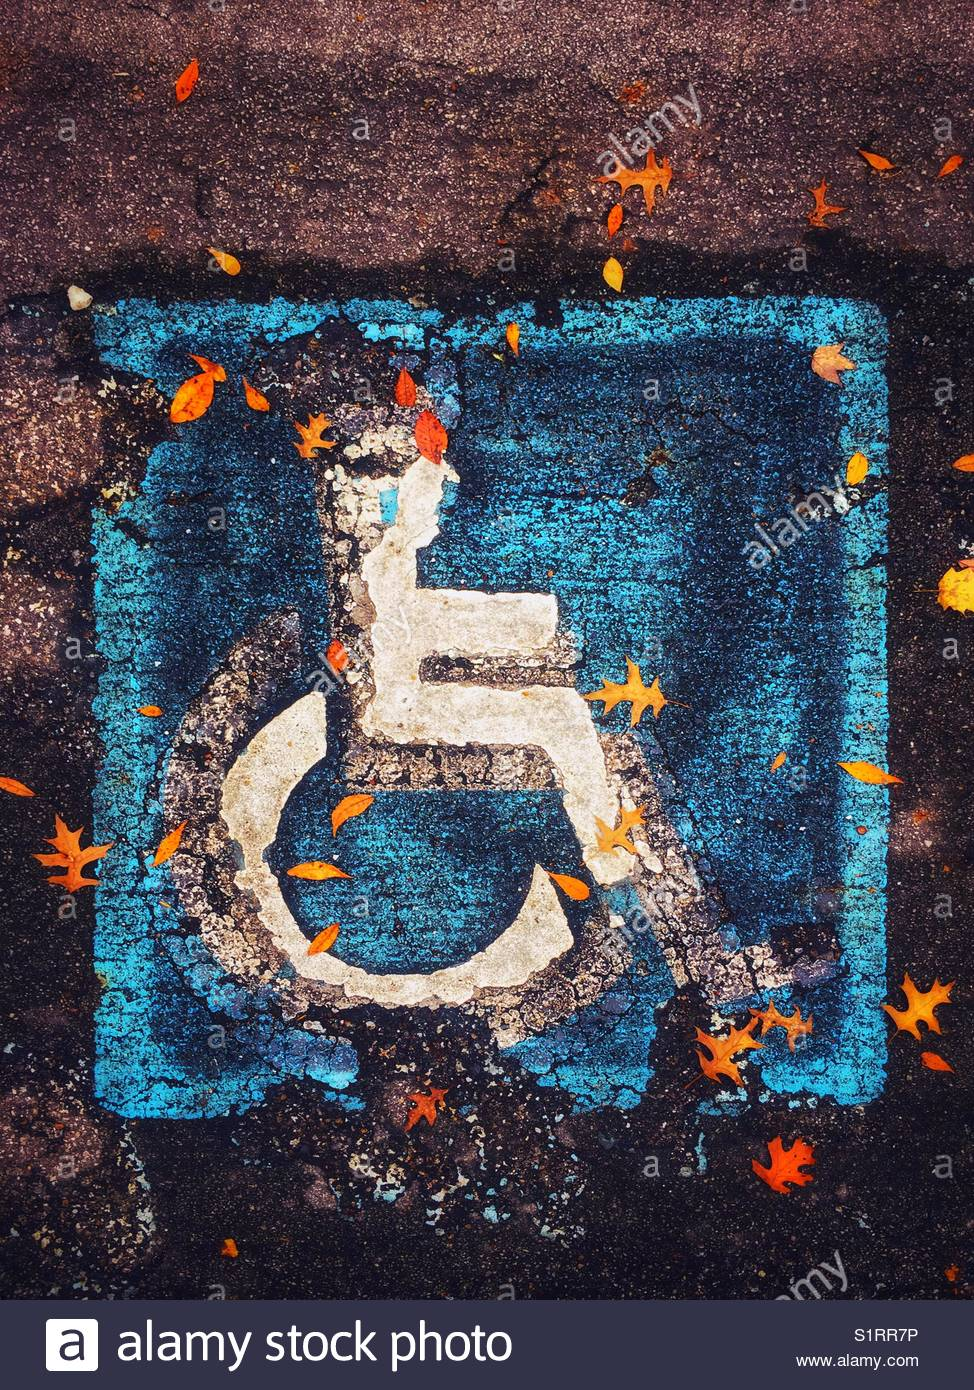 Worn out handicapped parking spot sign with scattered leaves - Stock Image